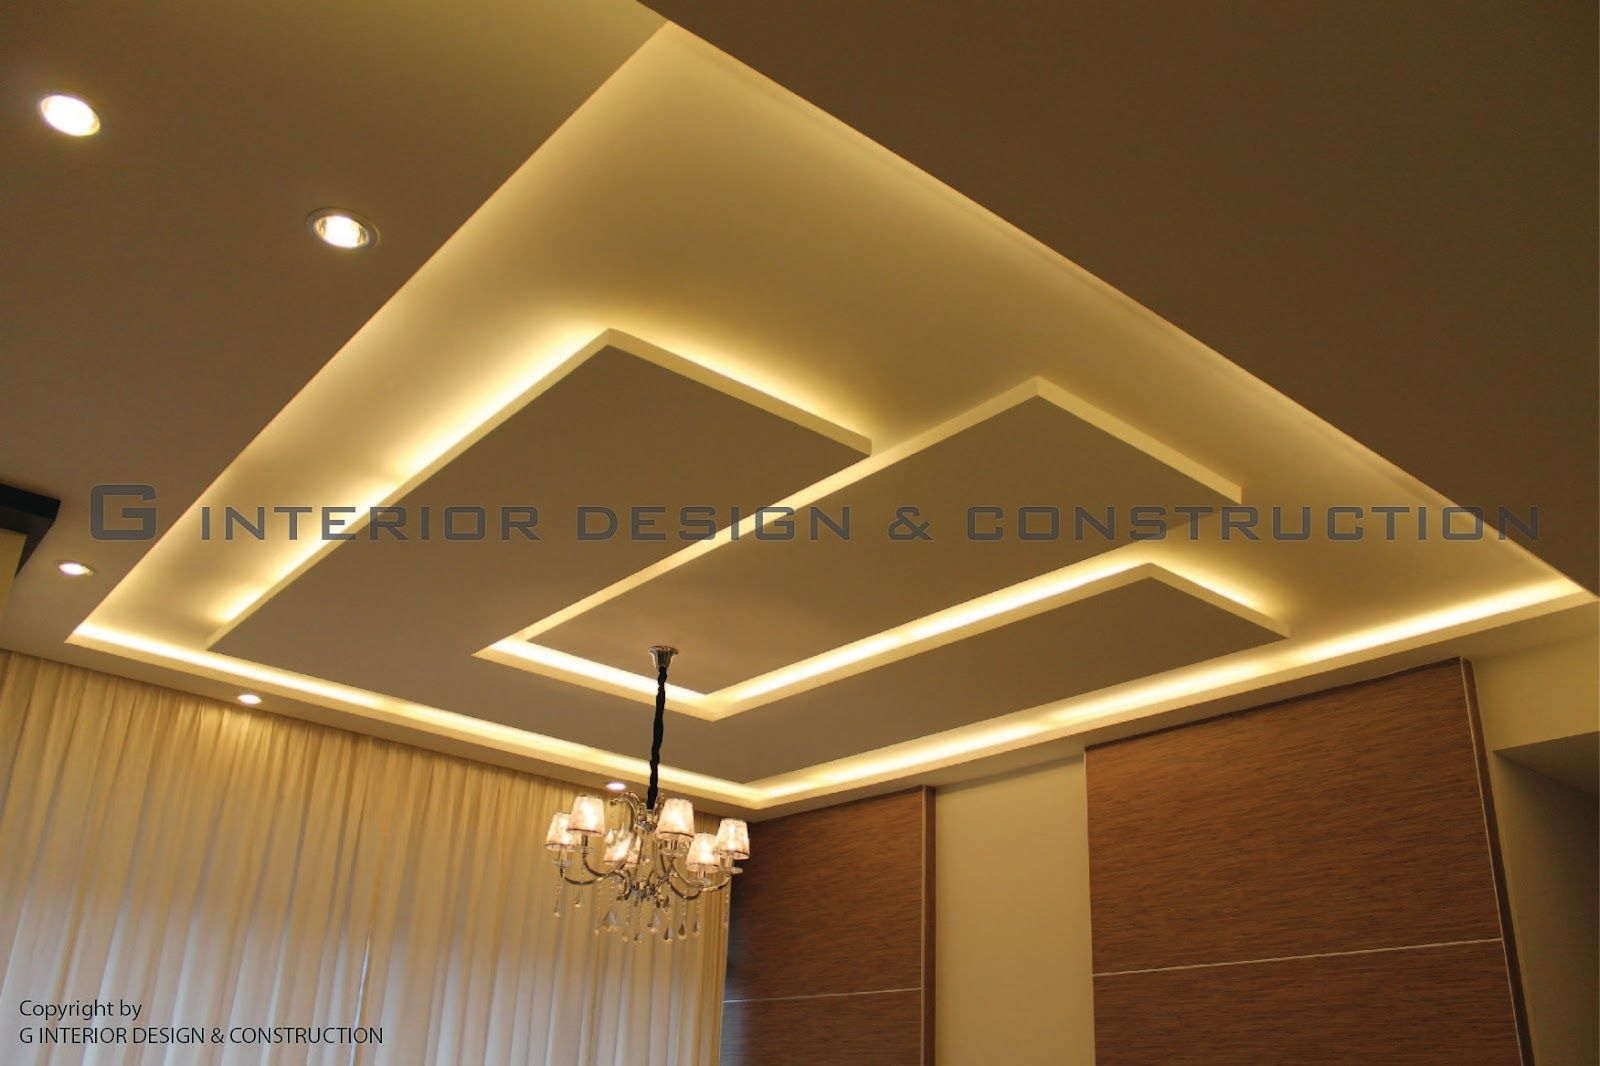 Ceiling illumination interior design construction sdn for Bedroom ideas low ceiling